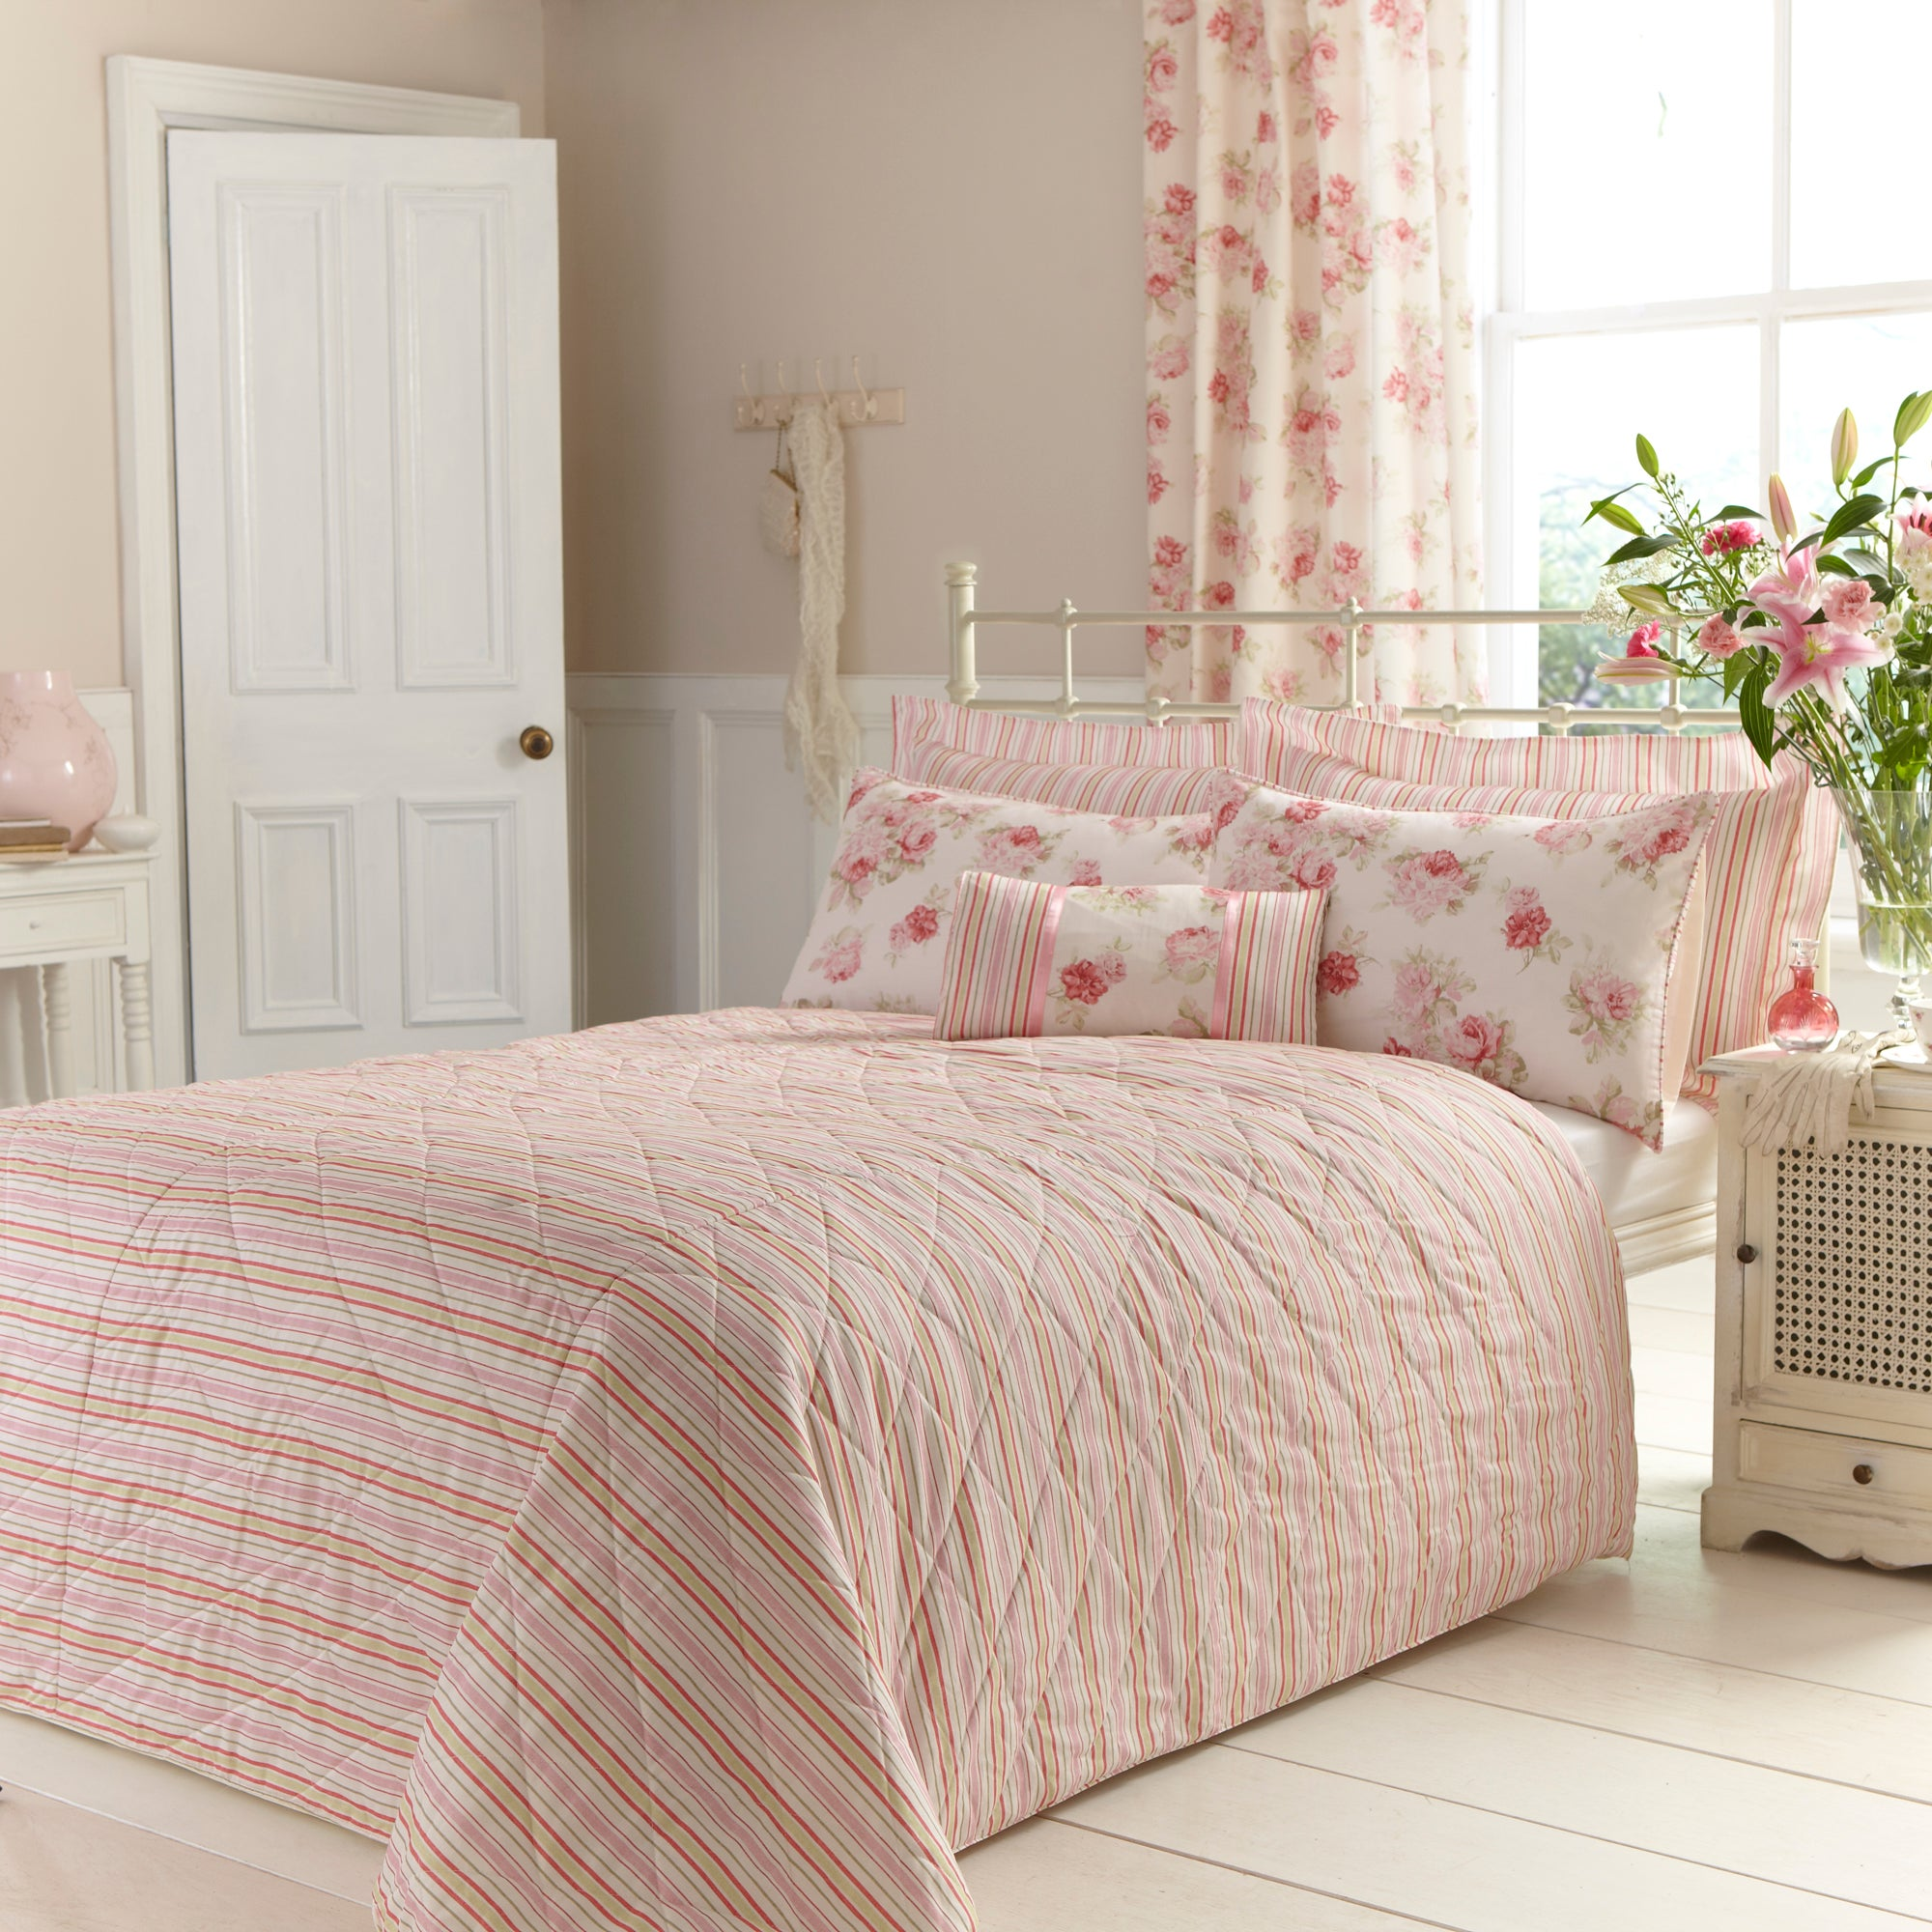 Image of Annabella Pink Bedspread Pink